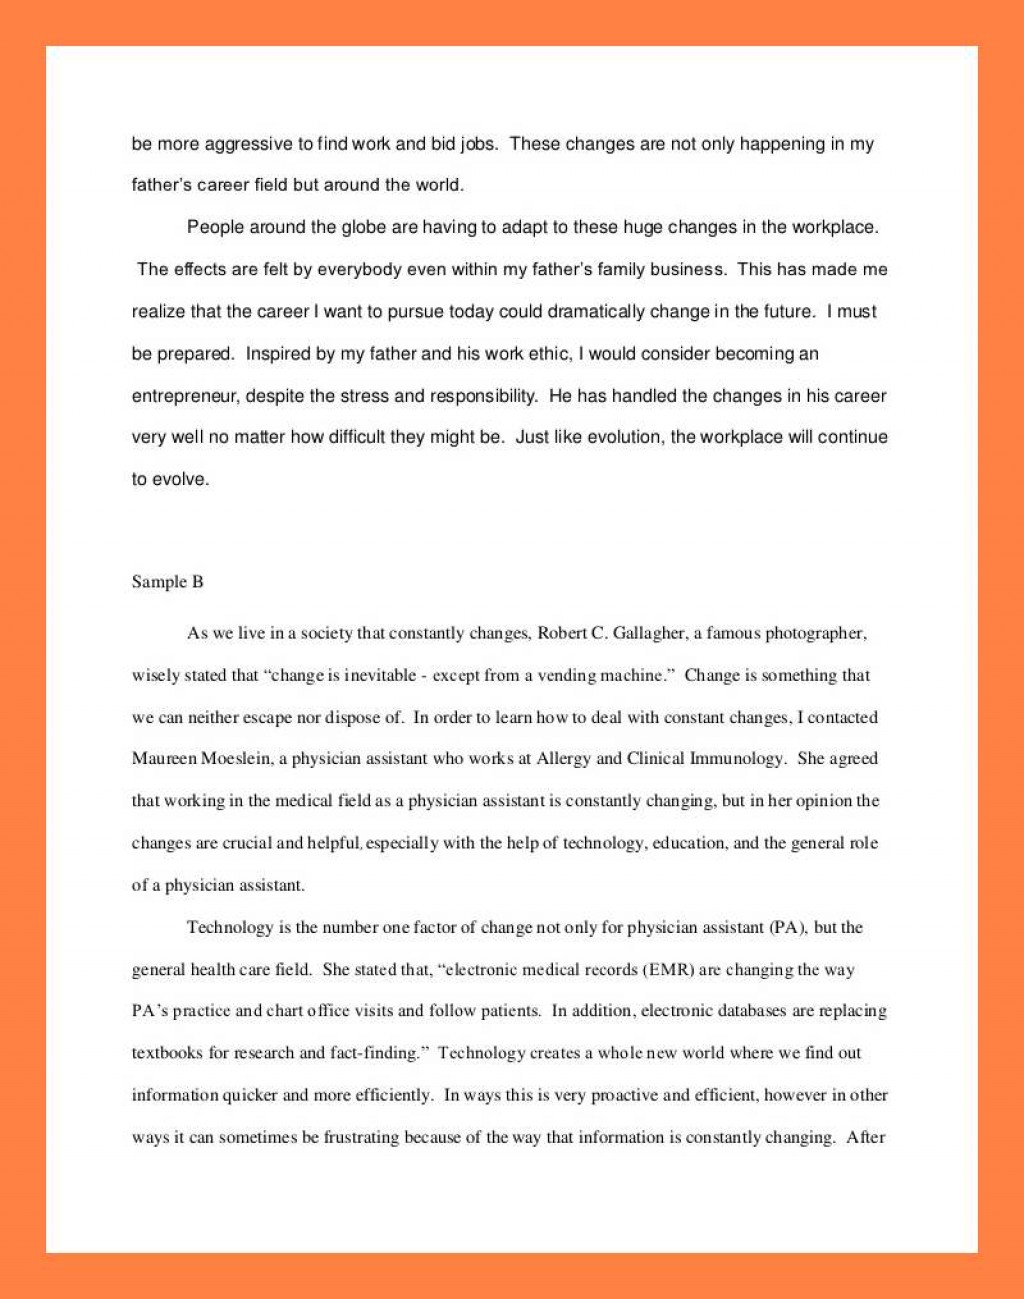 012 Interview Essays Of Student Reflections Free Beautiful Essay Examples Ielts Opinion Download Persuasive High School Large